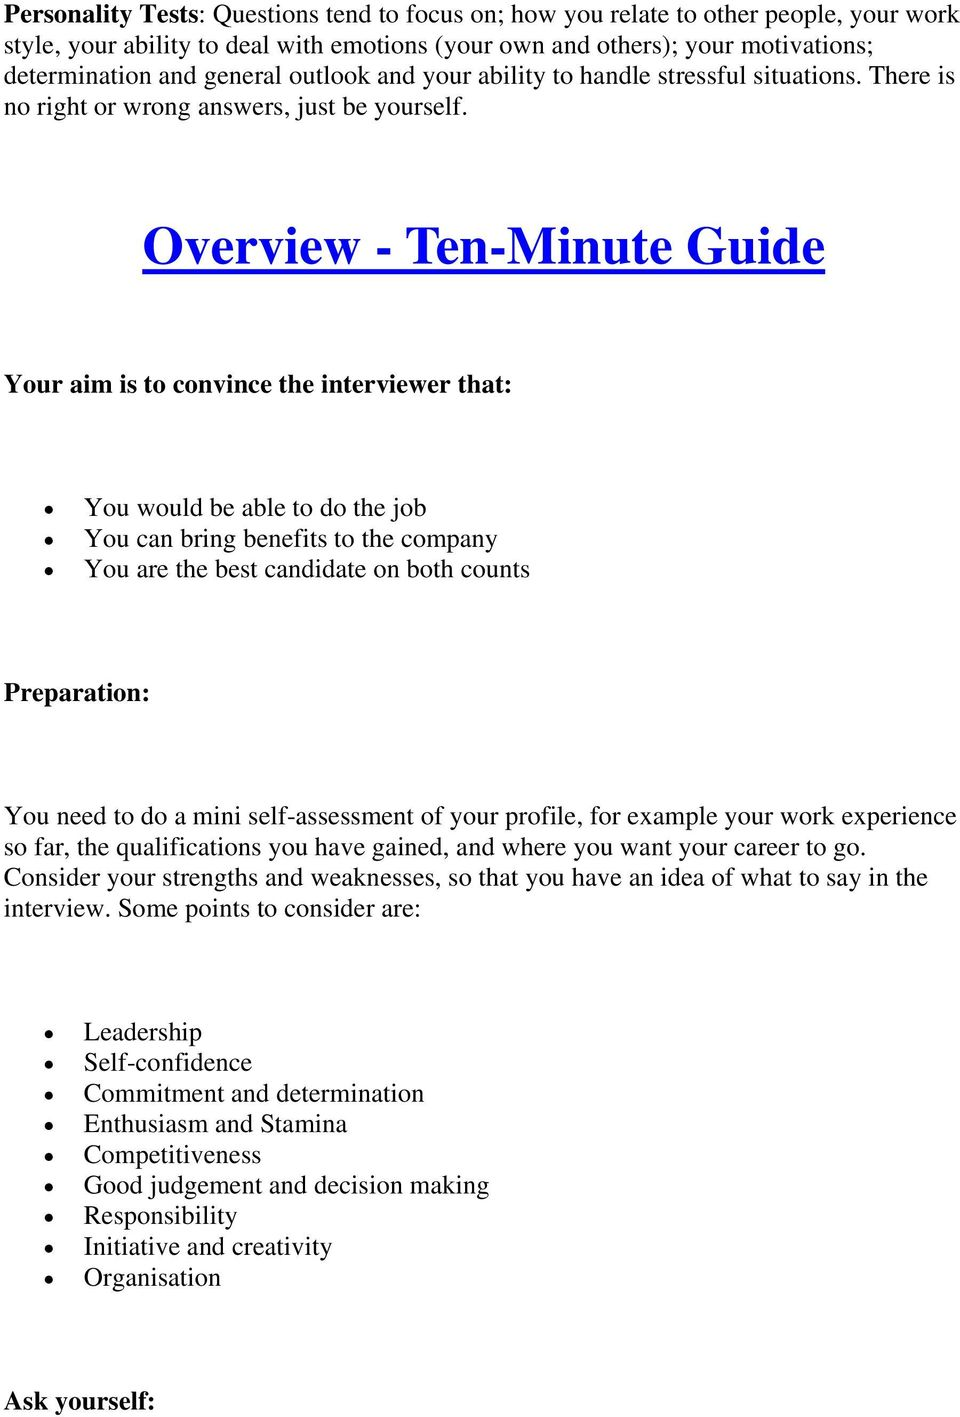 Overview - Ten-Minute Guide Your aim is to convince the interviewer that: You would be able to do the job You can bring benefits to the company You are the best candidate on both counts Preparation: